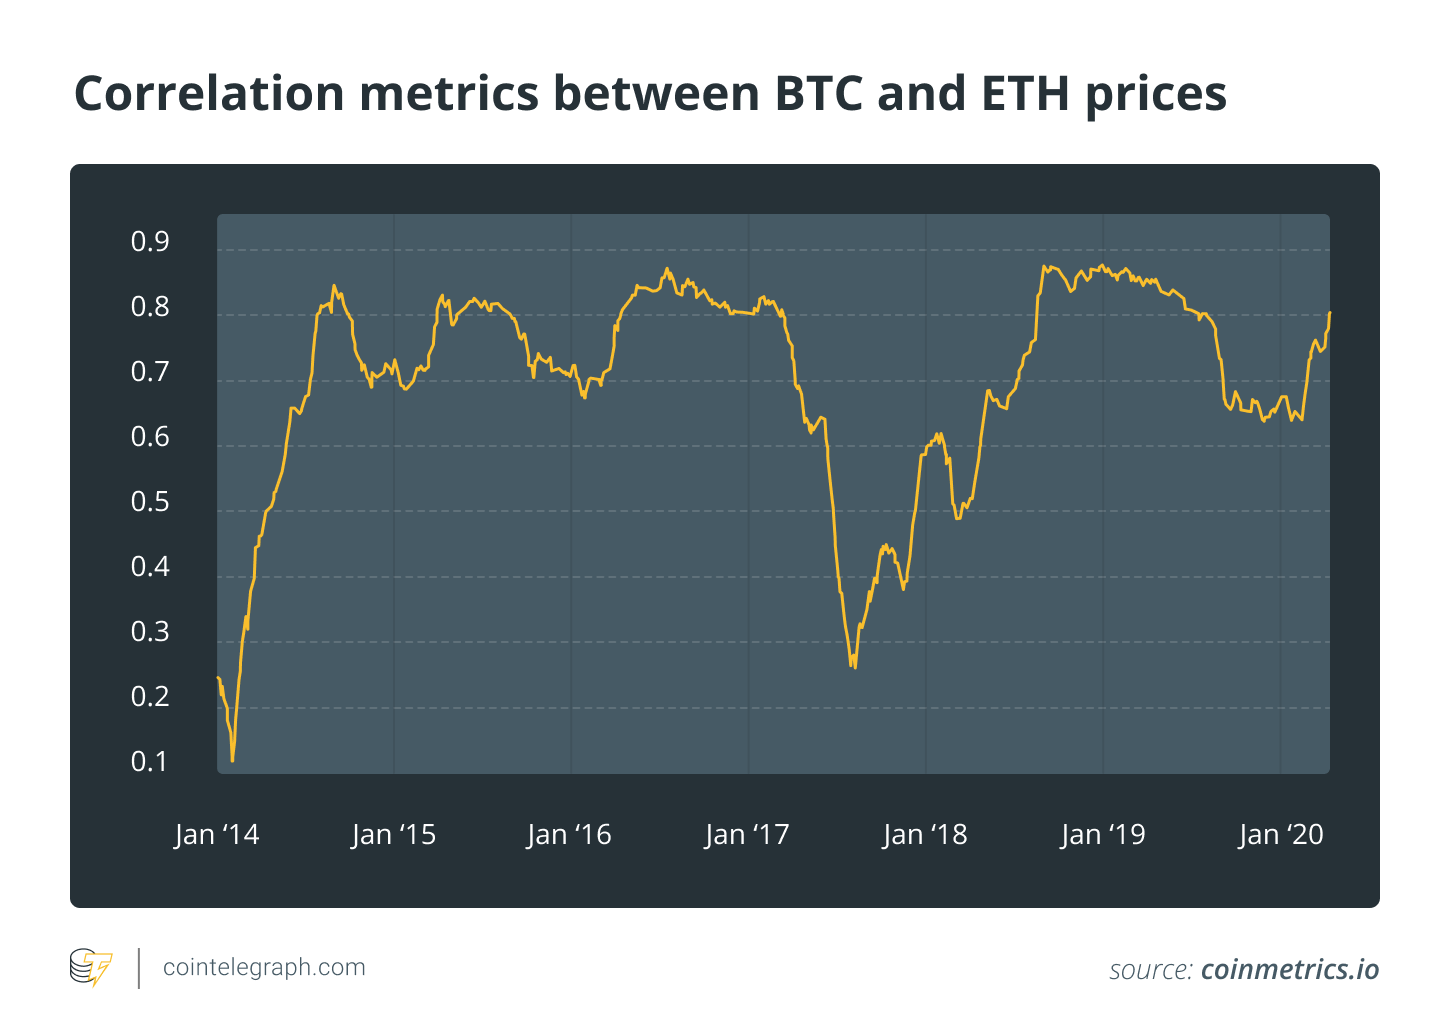 Correlation metrics between BTC and ETH prices